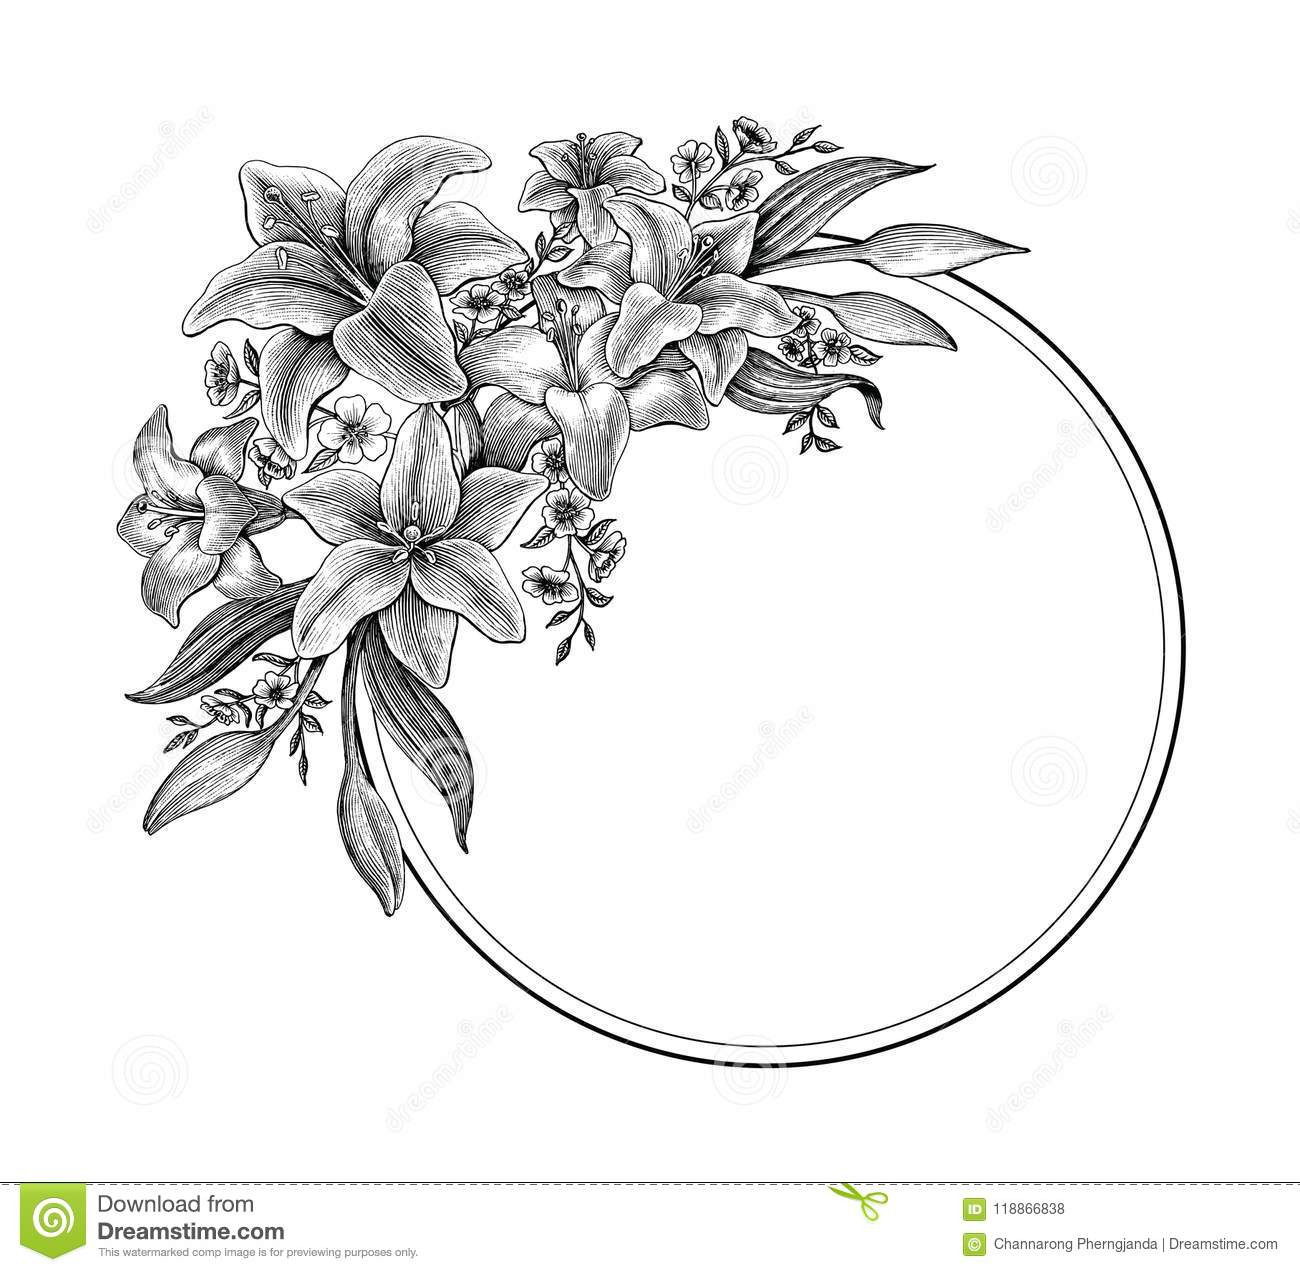 Lily Flowers Hand Drawing Vintage Black And White Clip Art For M